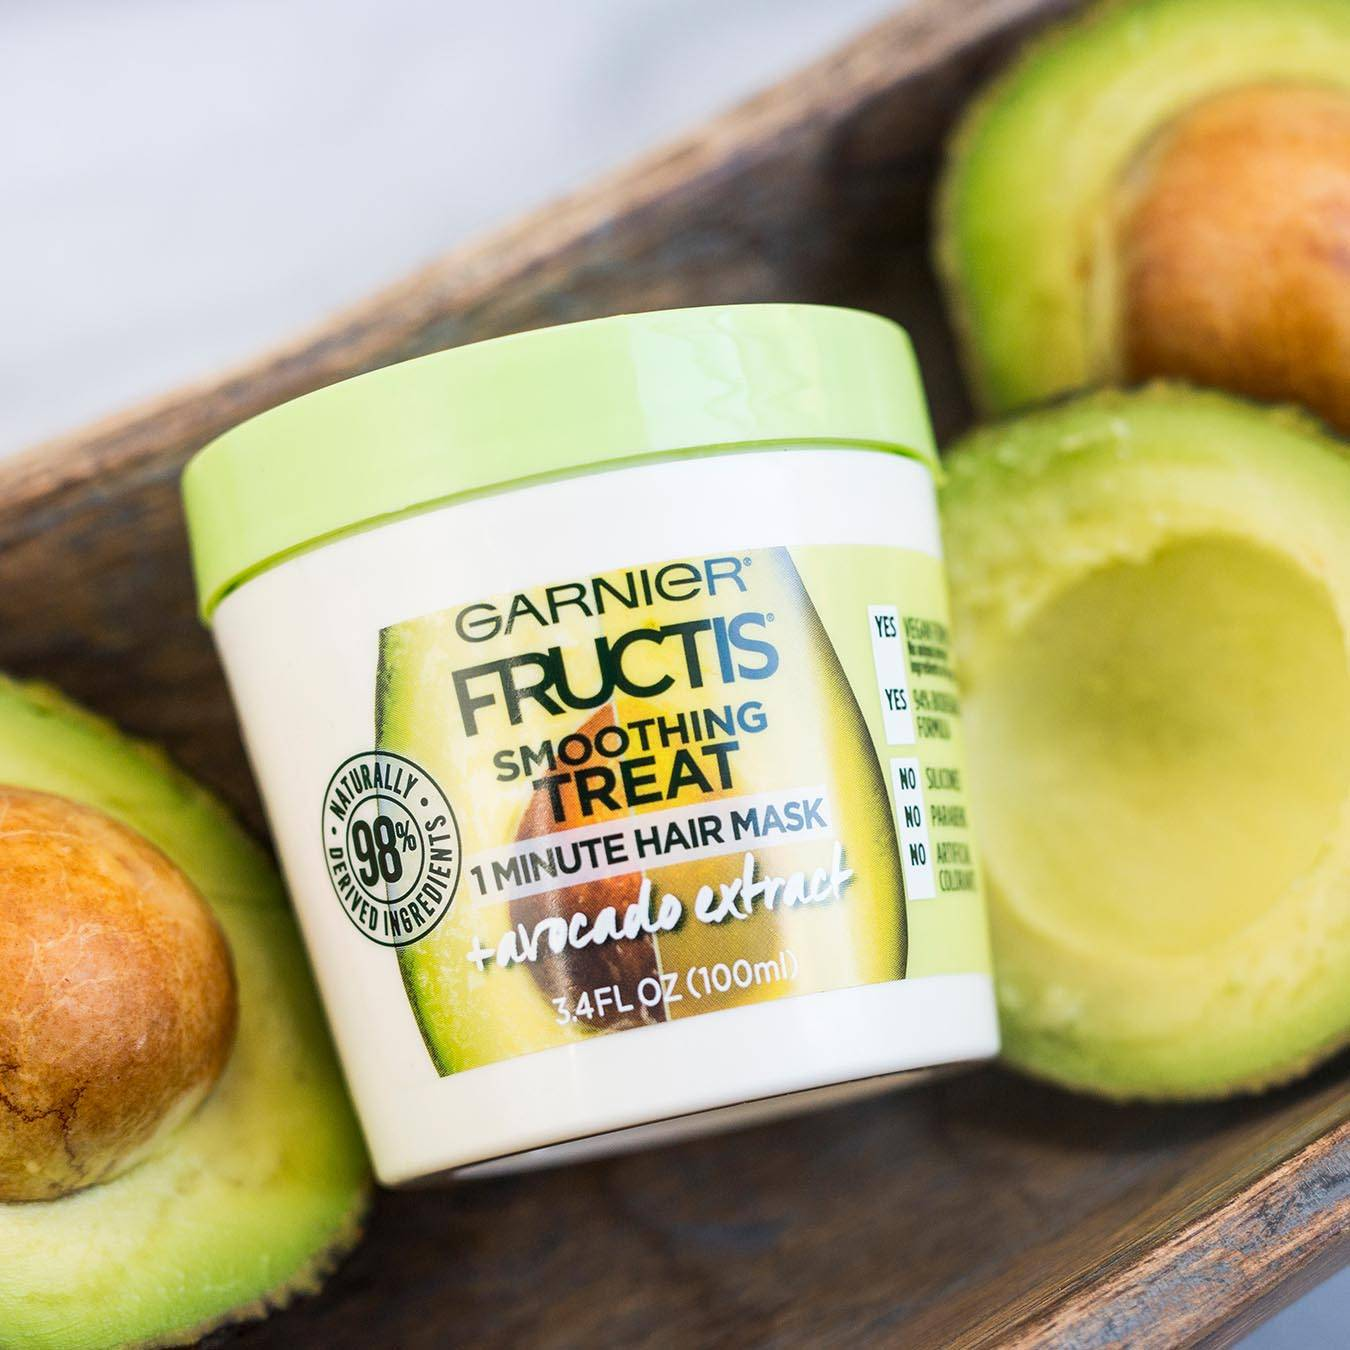 Garnier Fructis Smoothing Treat 1 Minute Hair Mask with Avocado Extract in a wooden trough next to halved avocados on a white marble background.